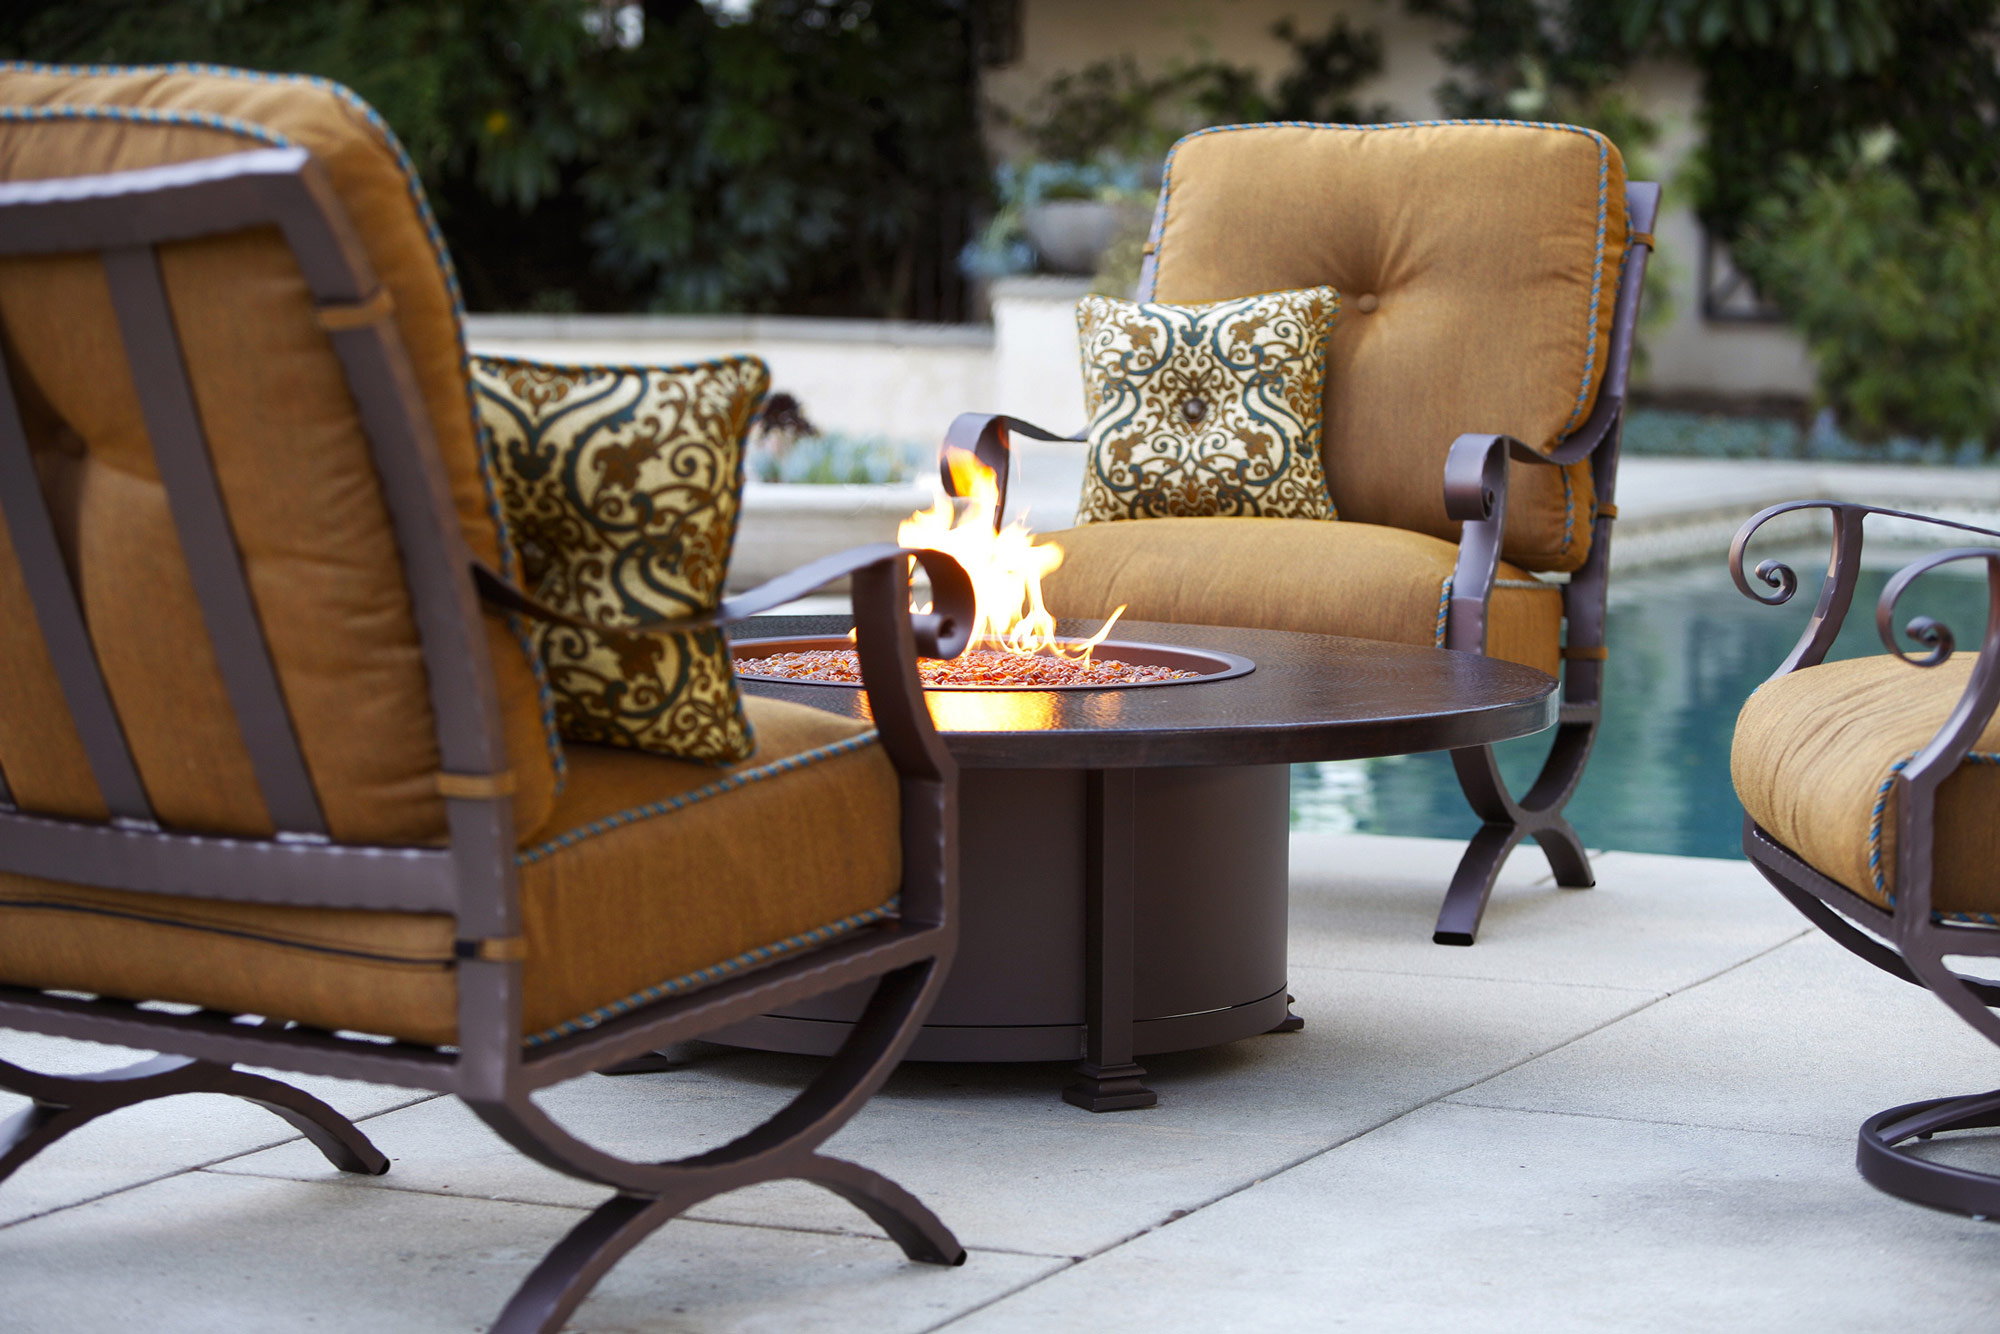 Free Patio Furniture Los Angeles San Fernando And Conejo Valleys With  Outdoor Patio Furniture.